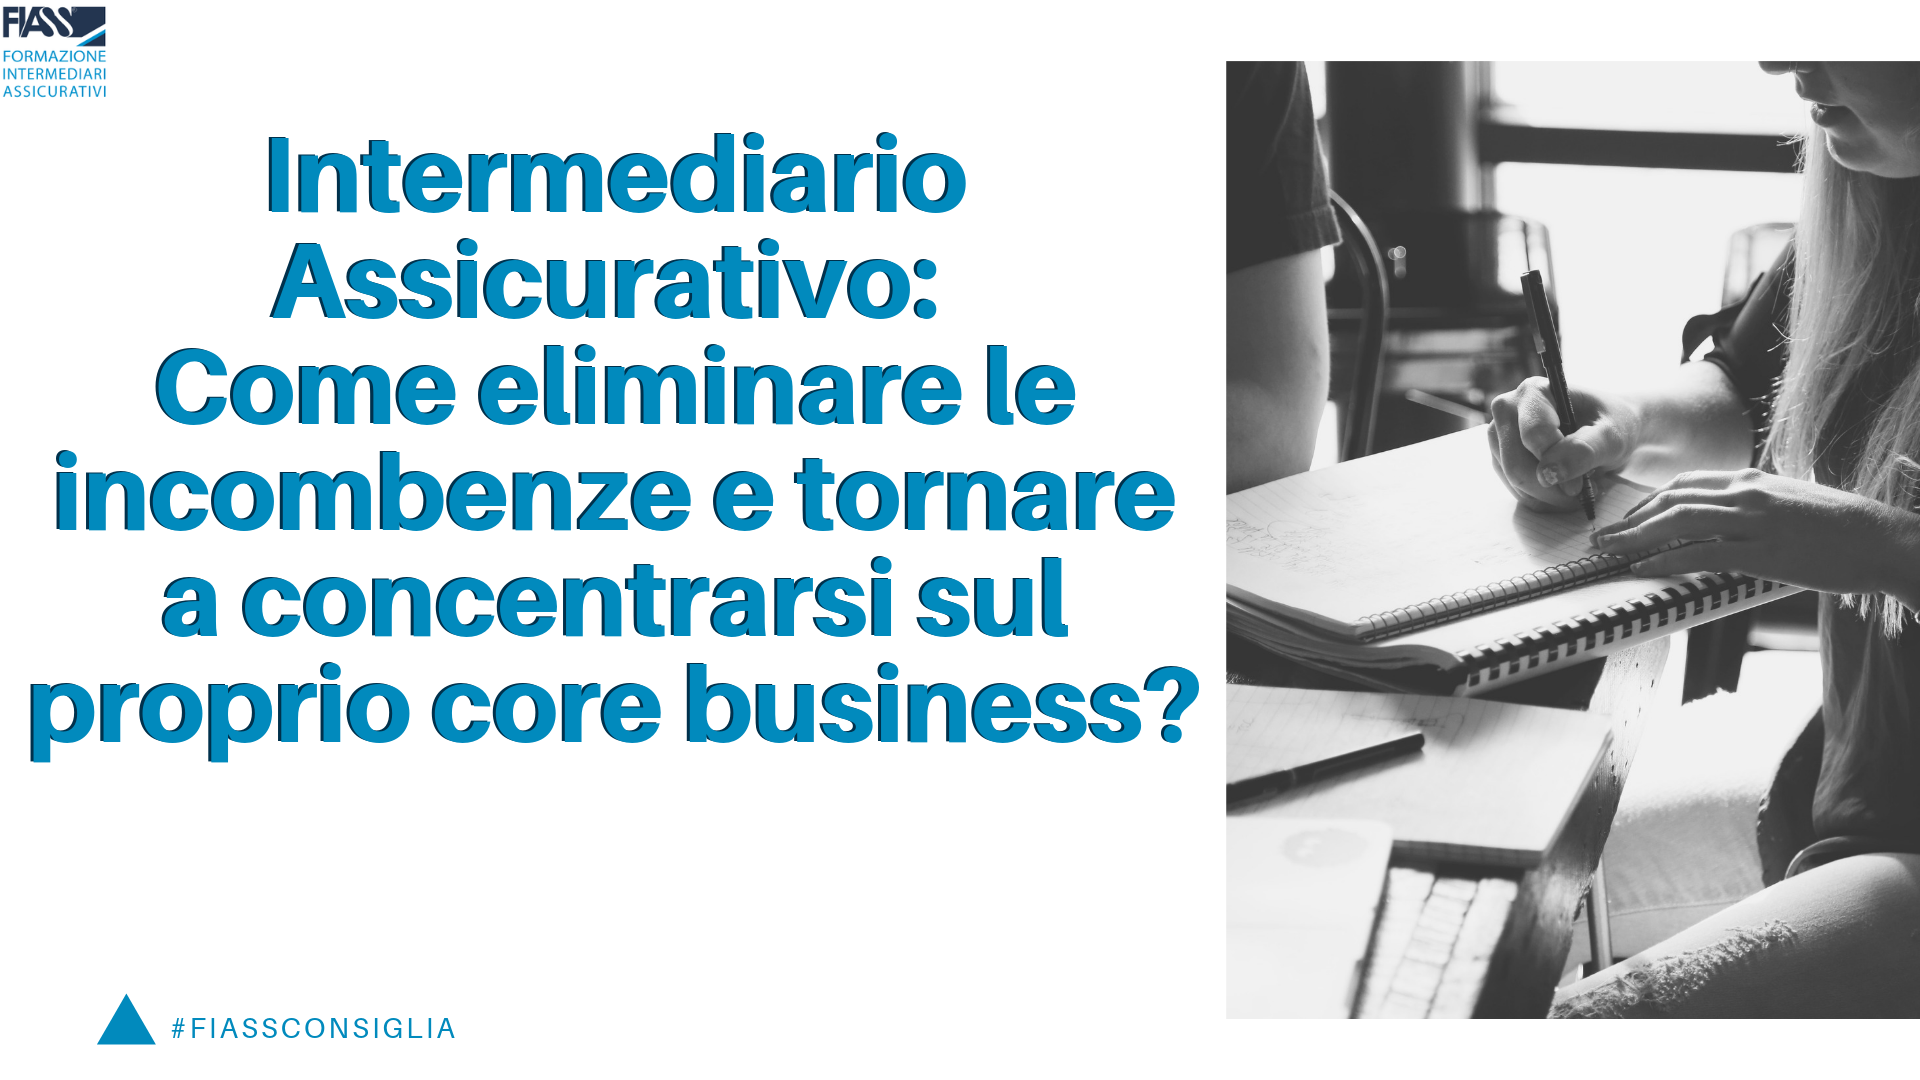 Intermediario assicurativo concentrarsi proprio business